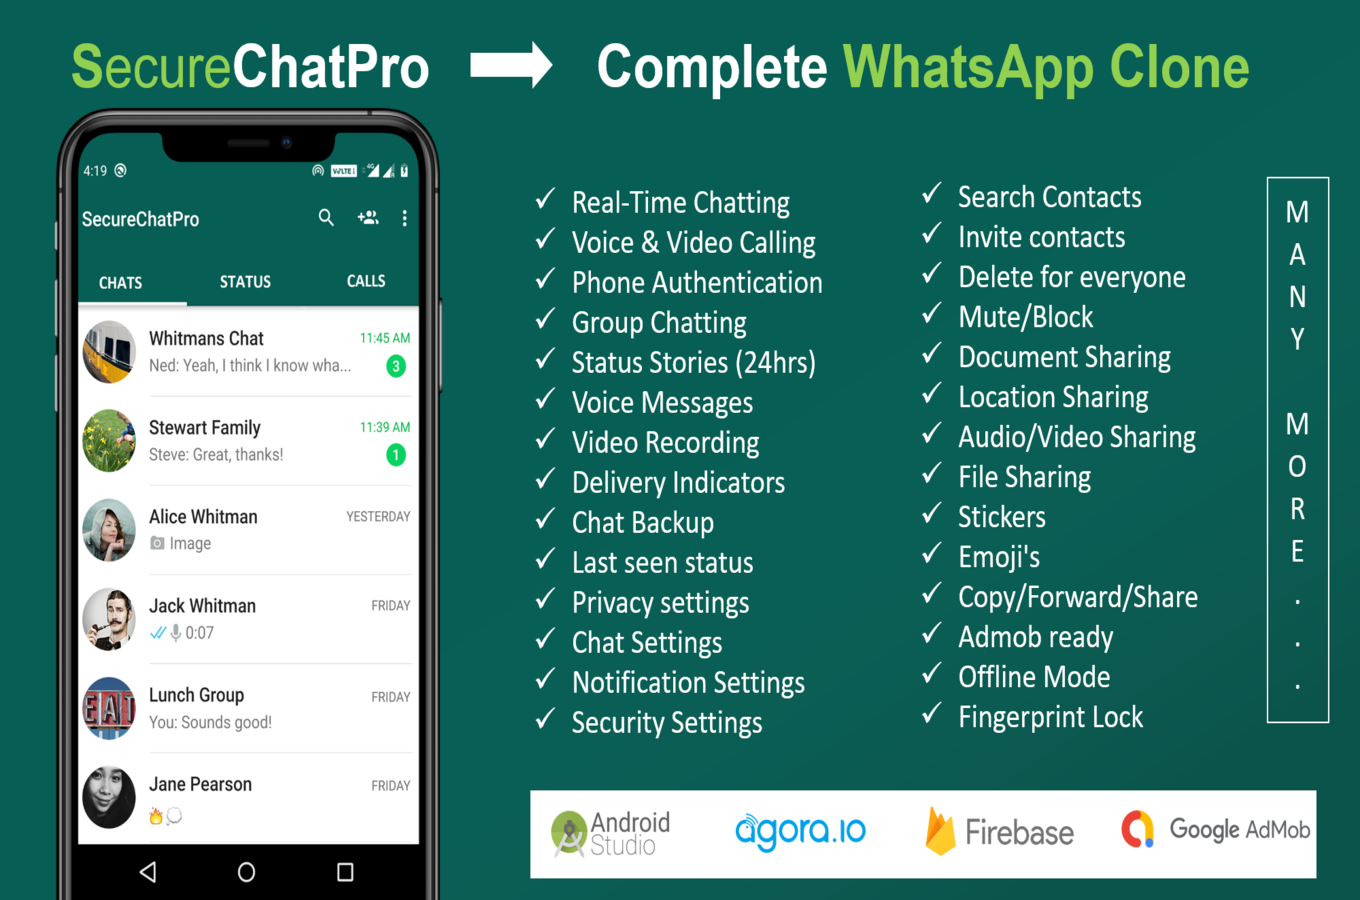 SecureChatPro - A Complete Whatsaap Clone - 2